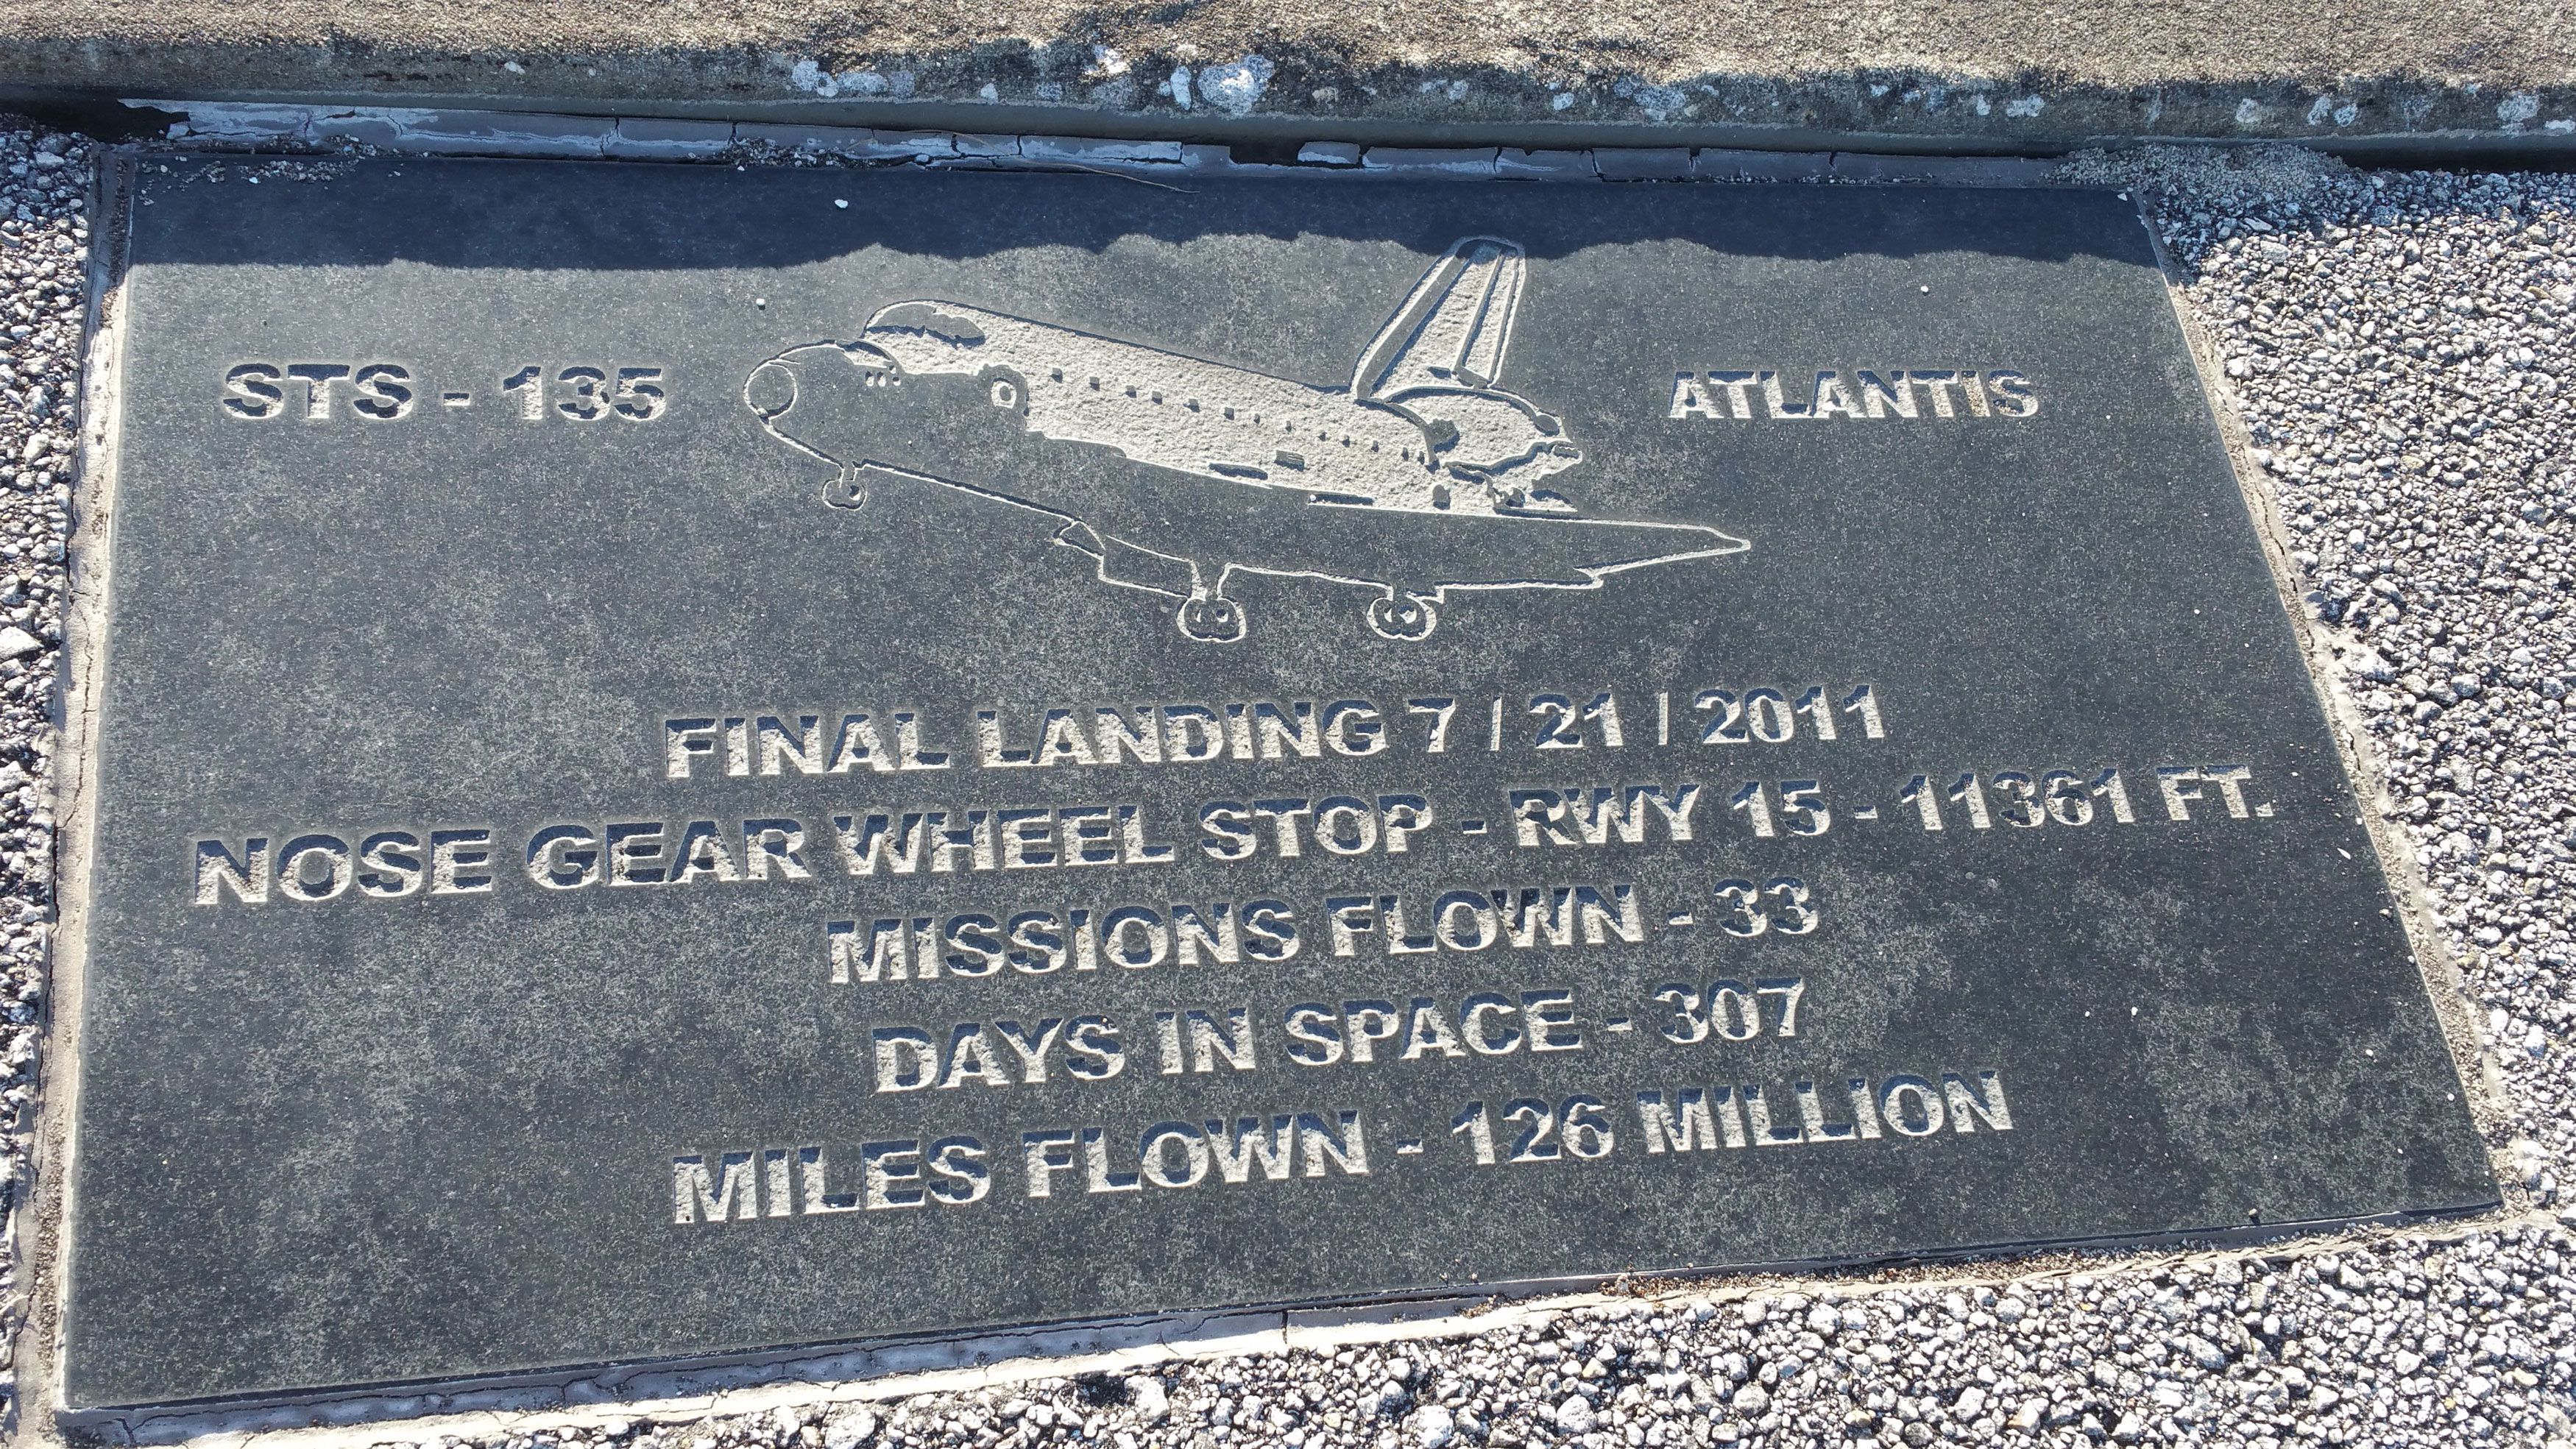 <p>A closer look at the plaque.</p>